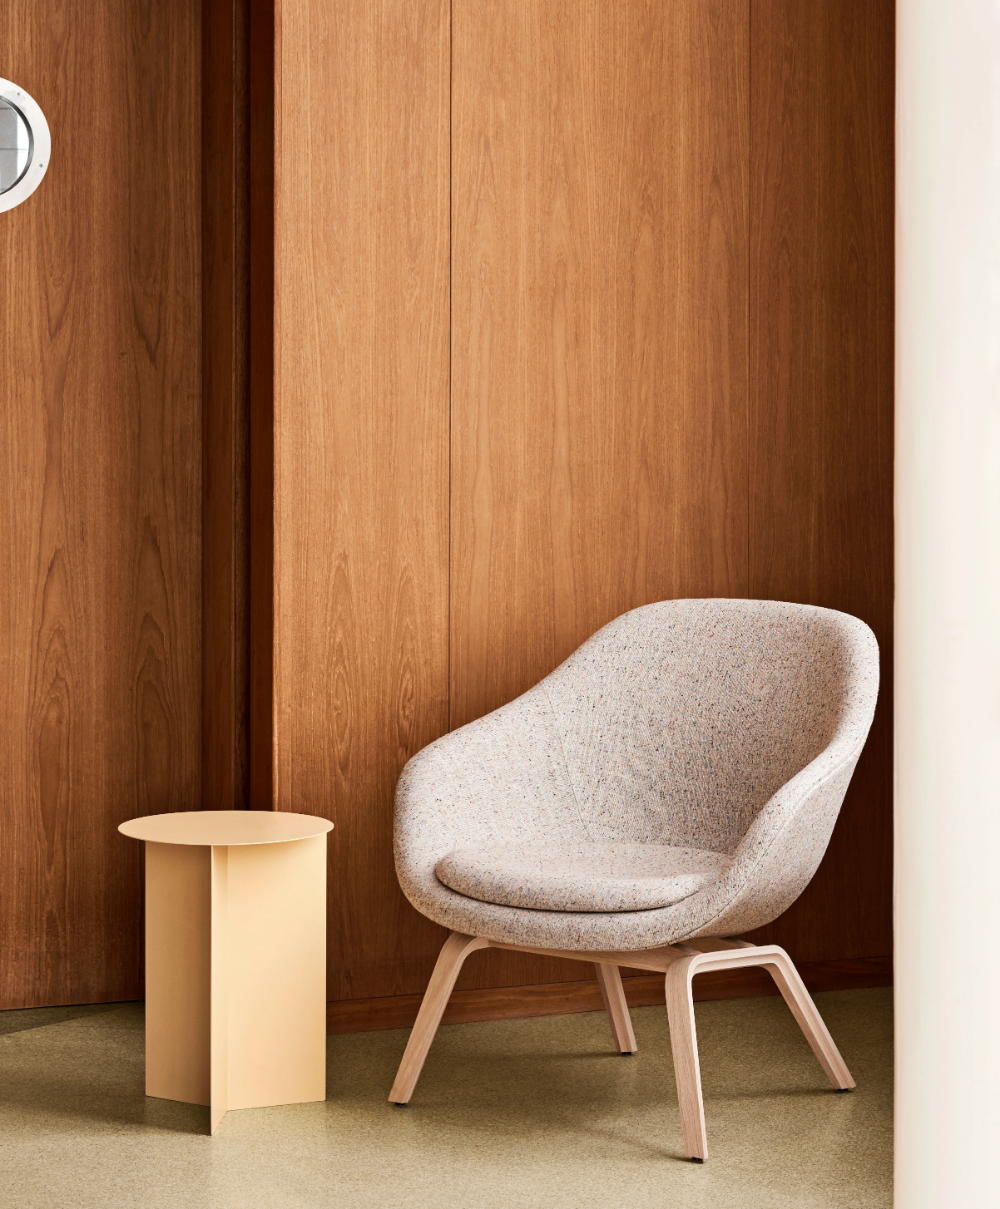 Peachy Aal 83 Lounge Chair From Hay Ffe In 2019 Lounge Chair Ibusinesslaw Wood Chair Design Ideas Ibusinesslaworg